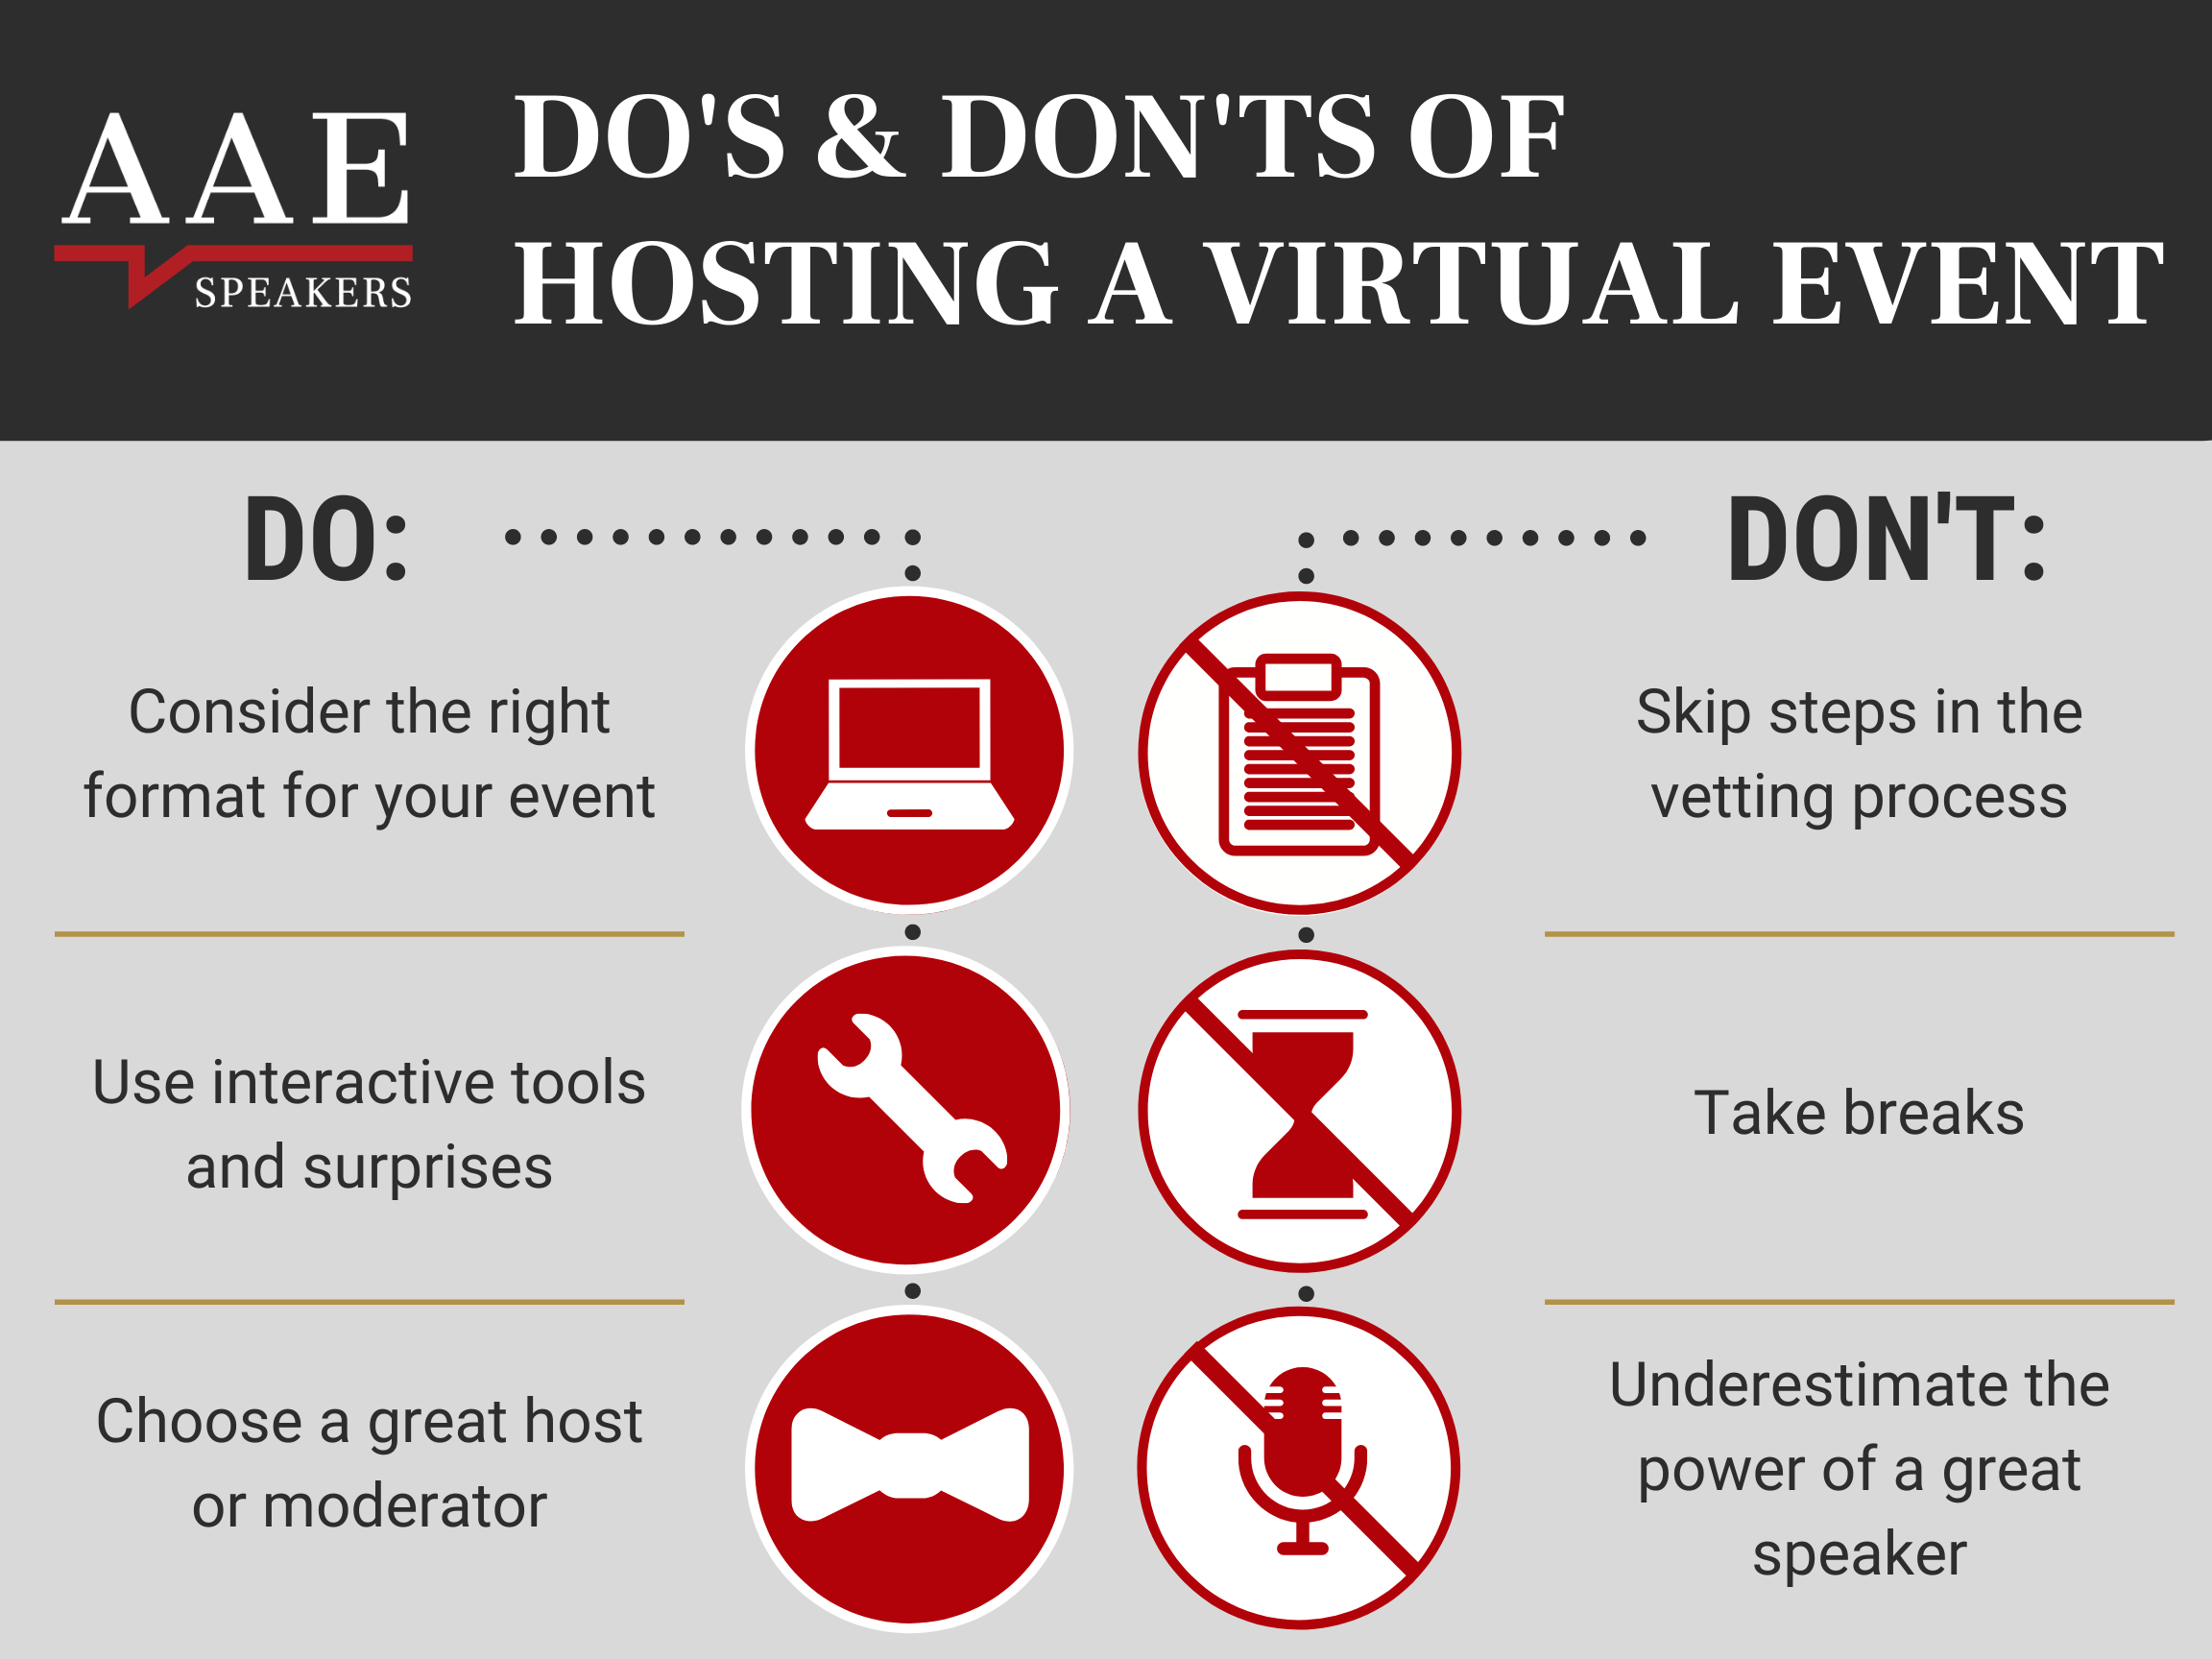 Do's and Don'ts of Virtual Events